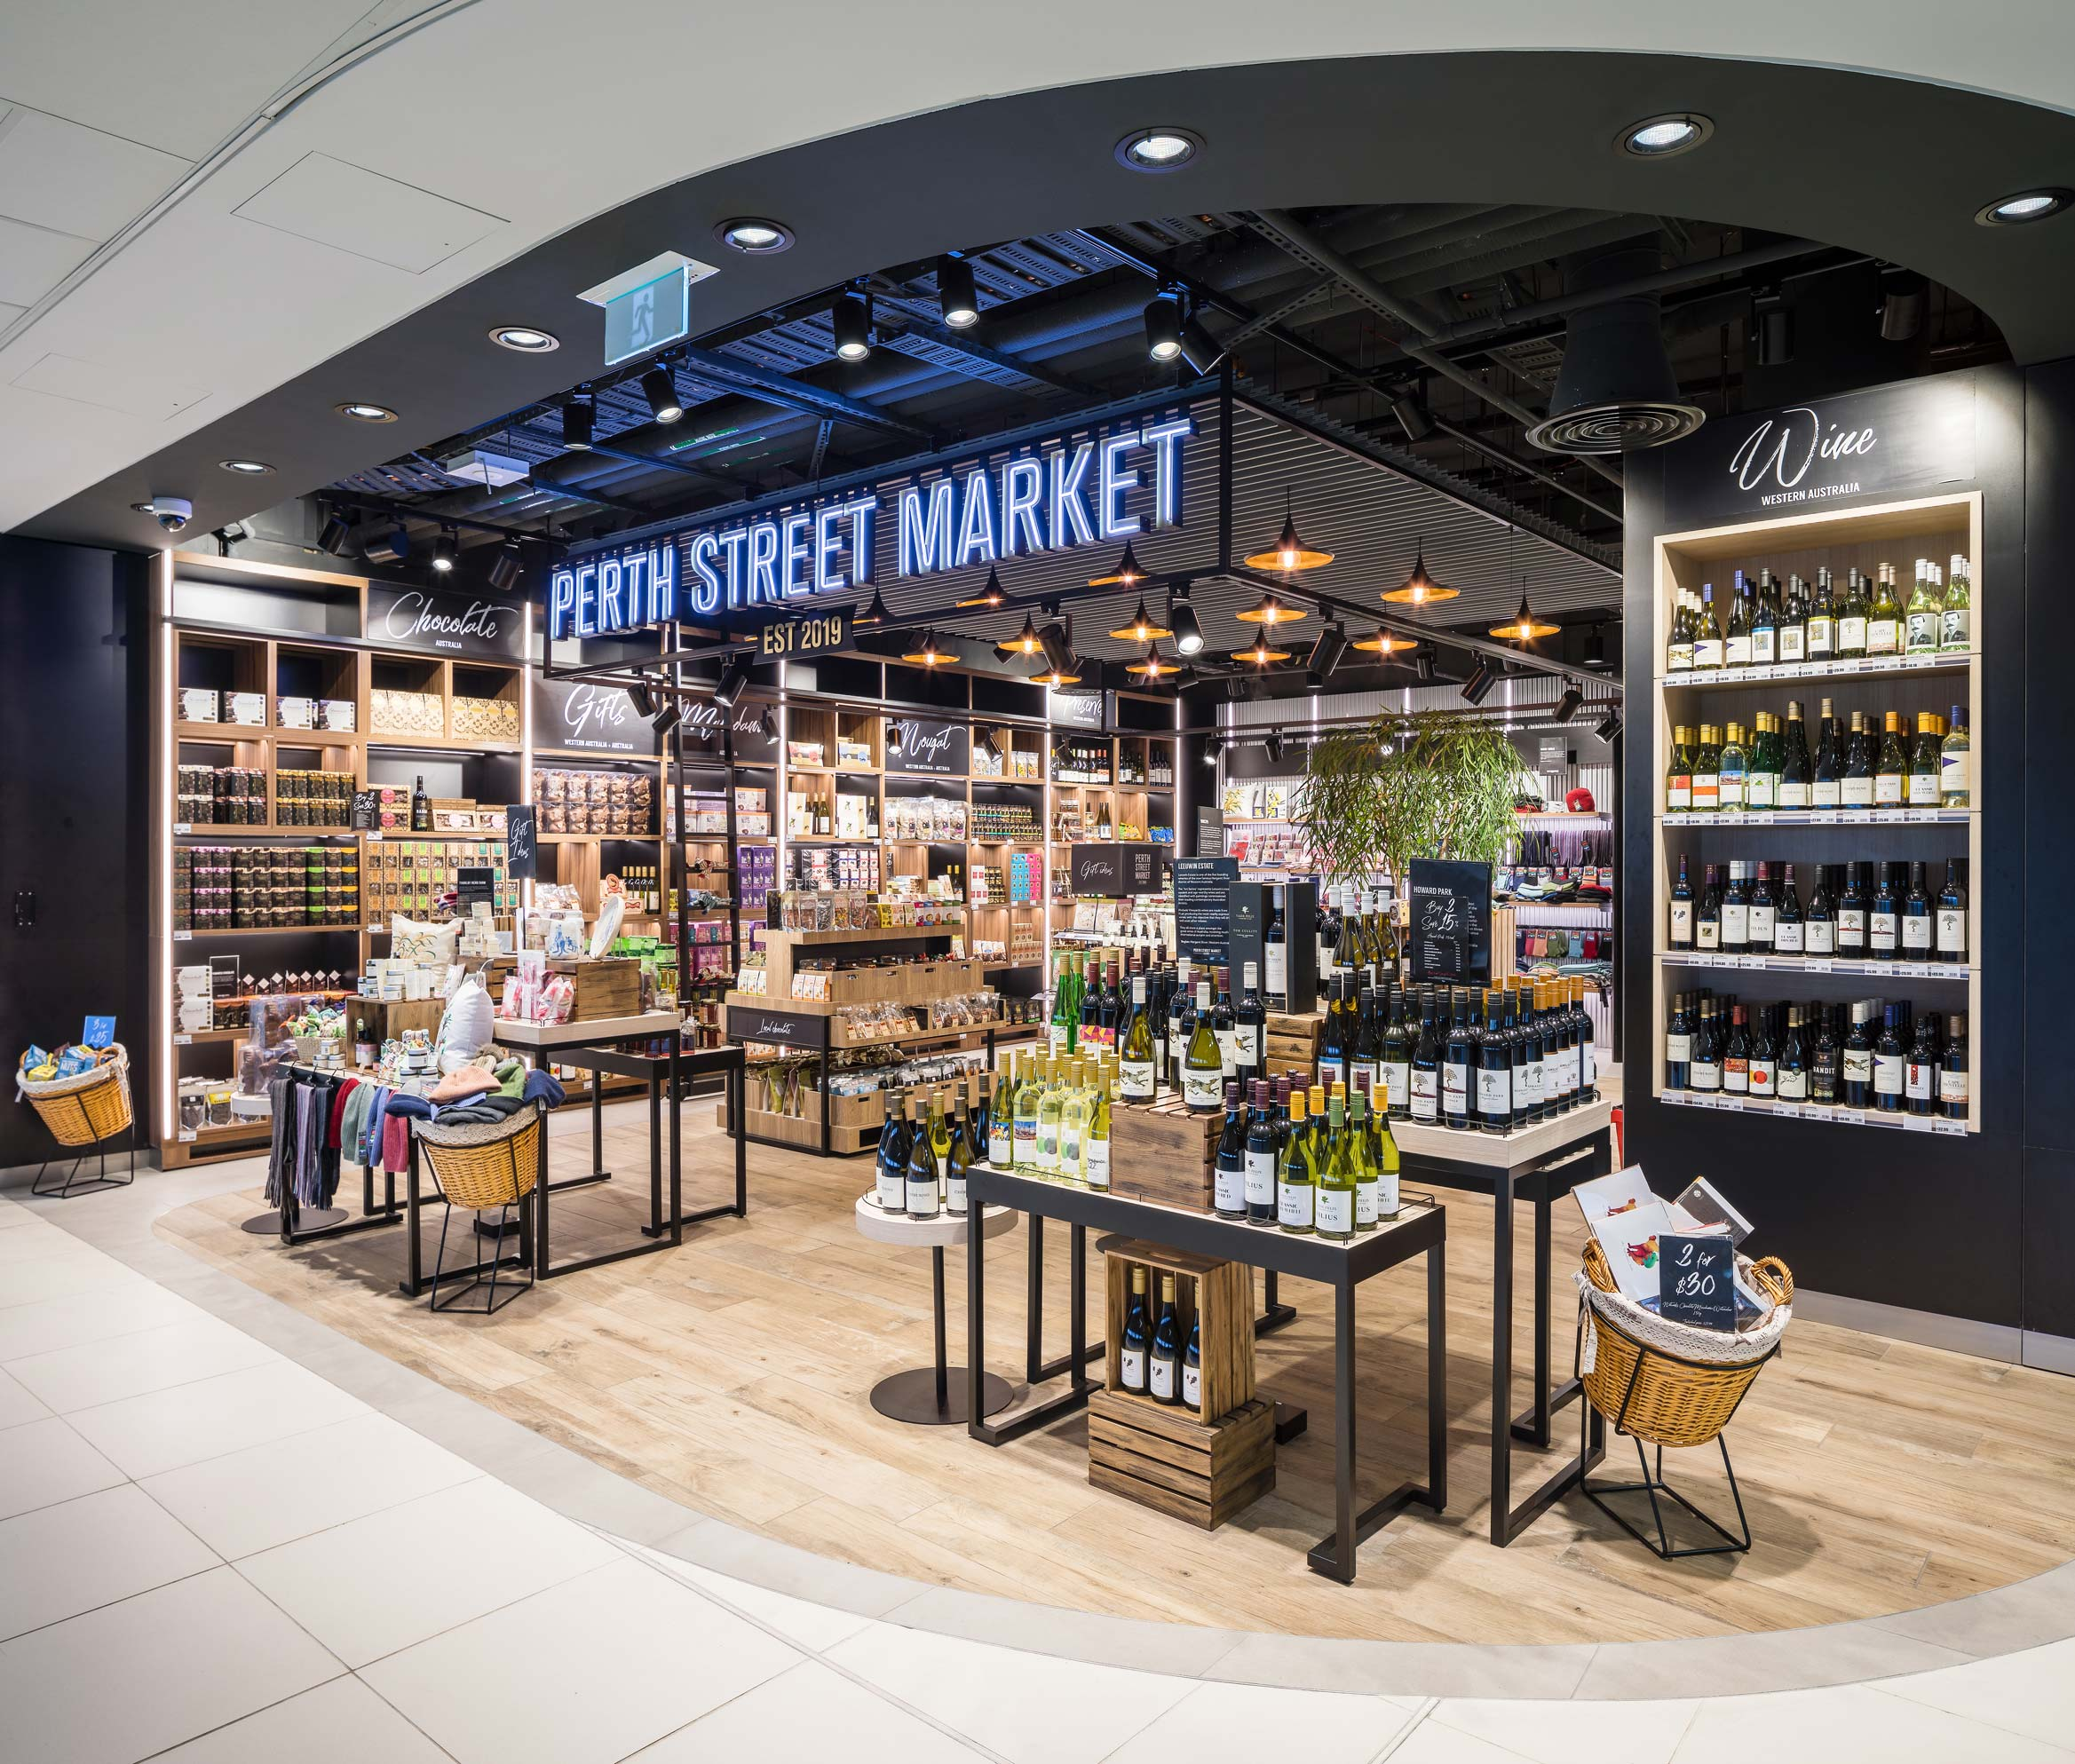 Australiana themed retail shop called Perth Street Market at Perth International airport Duty Free, with timber flooring and shelves of wine